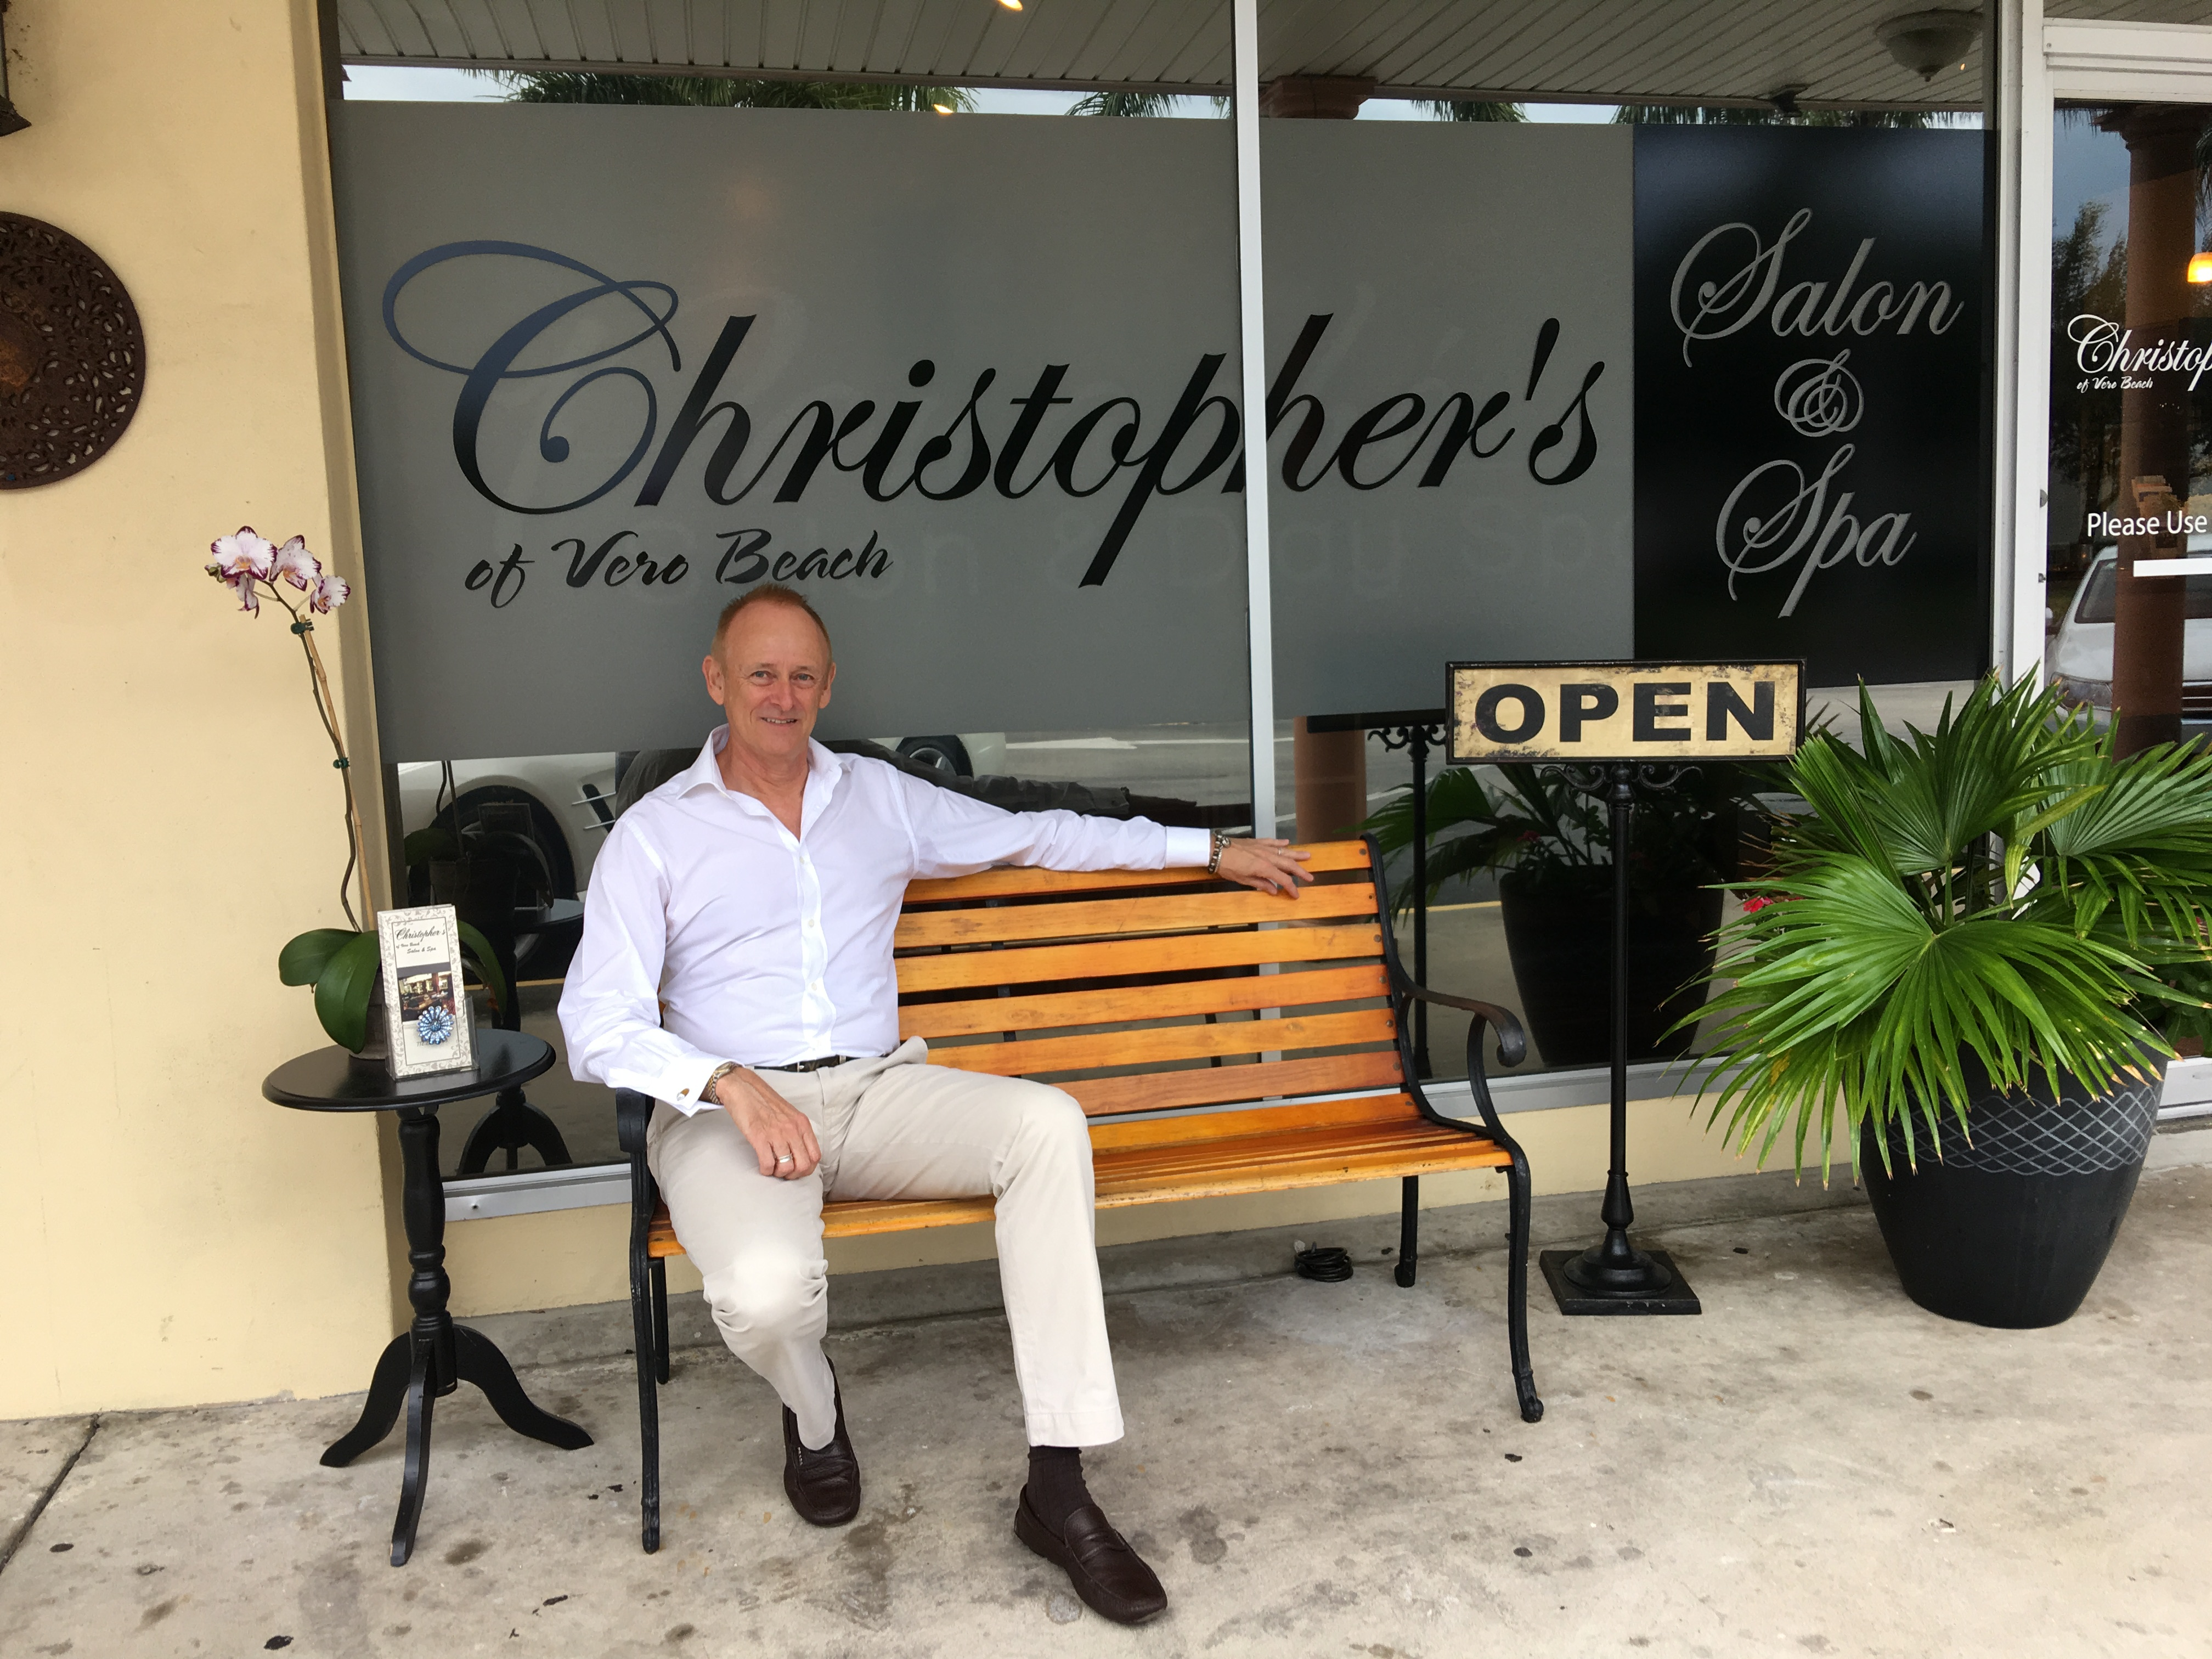 Christopher's of Vero Beach